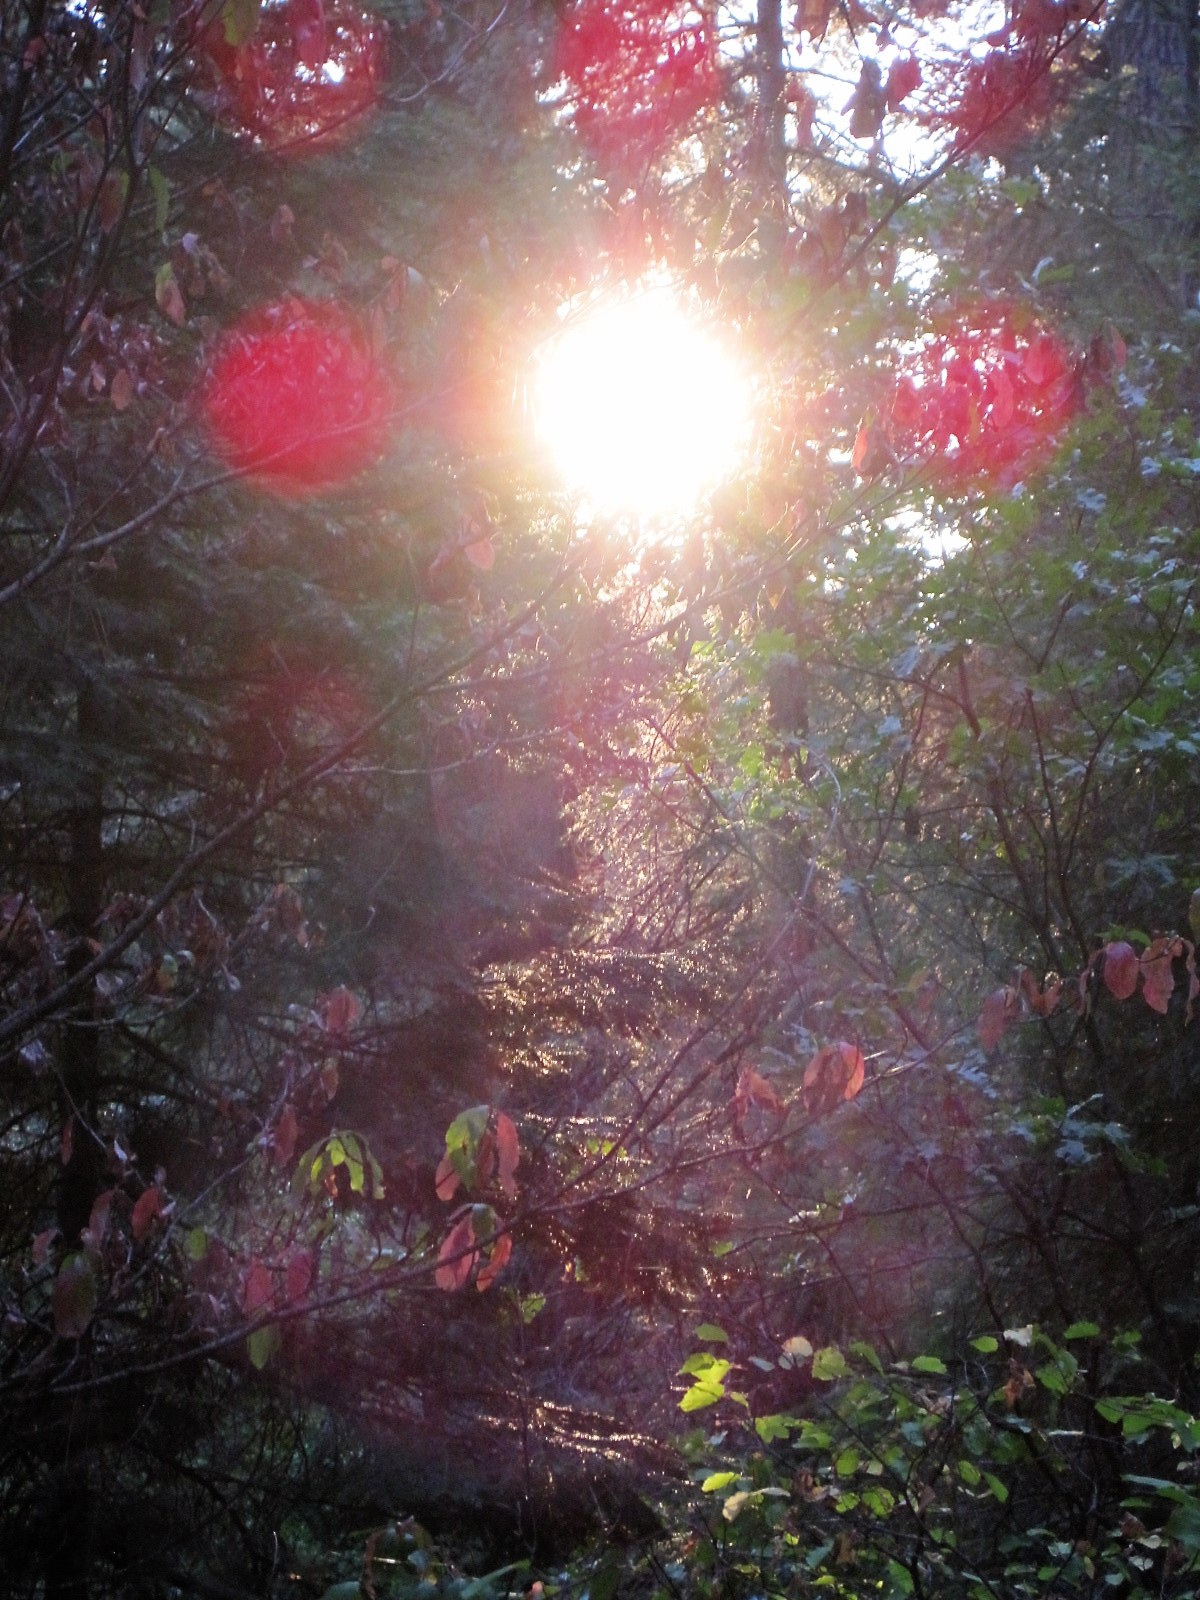 Orbs in the forest